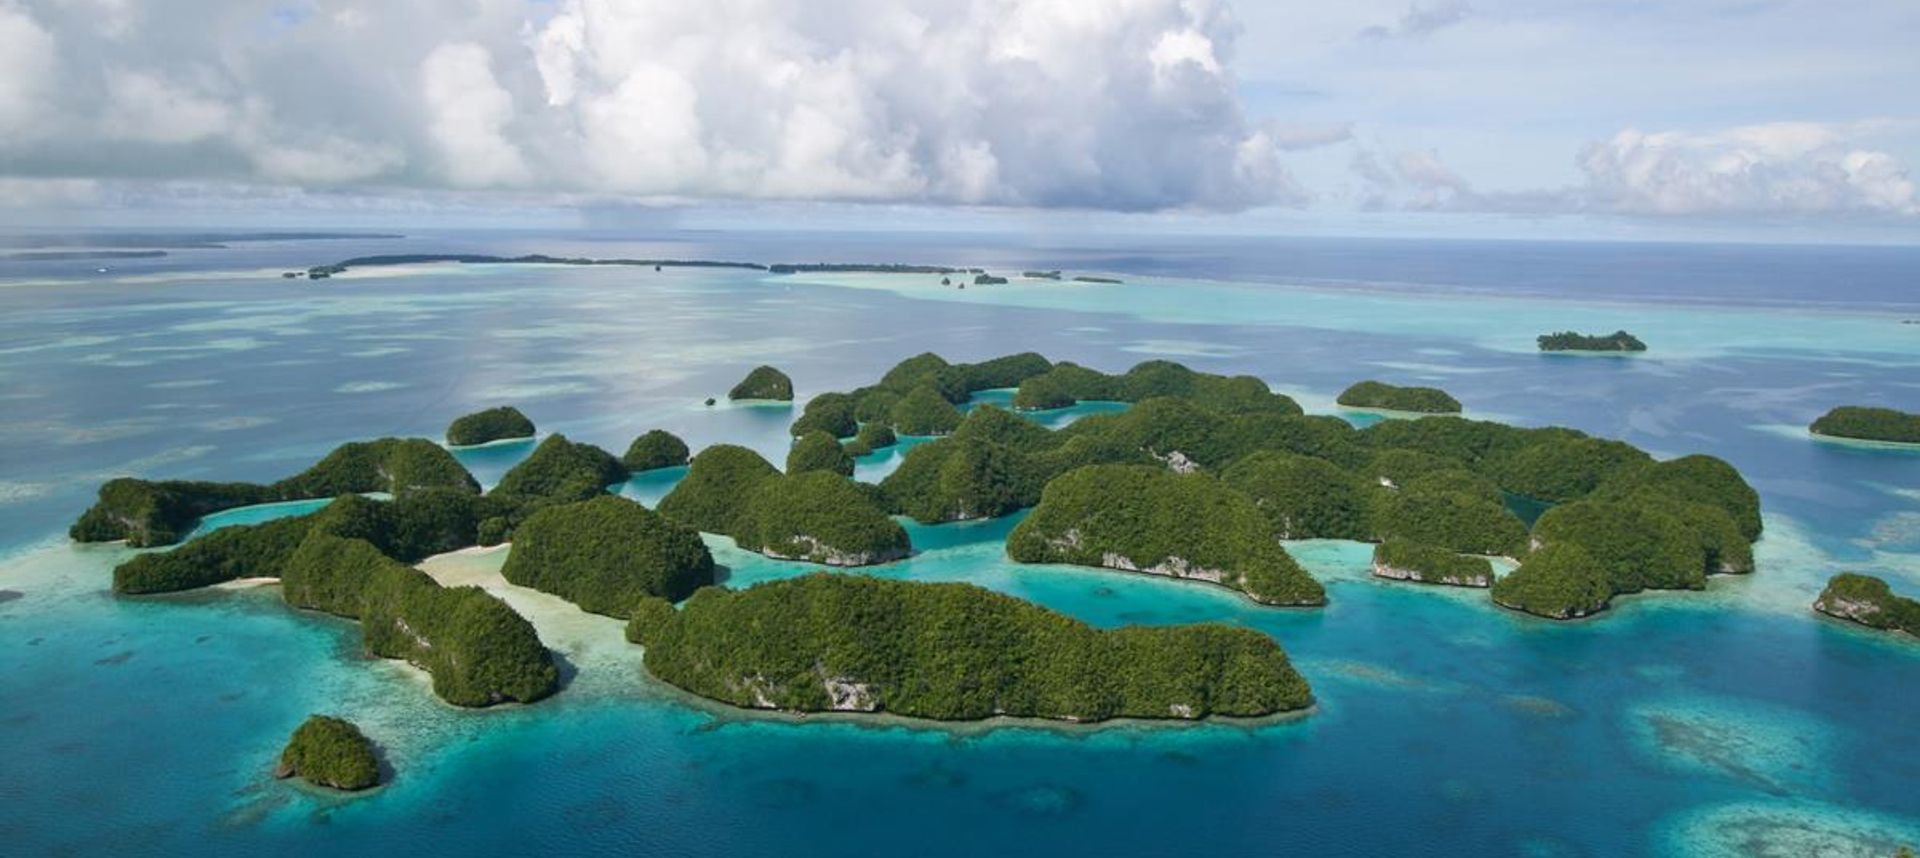 An aerial view of Palau's Seventy Islands Nature Reserve (dreamstime.com)